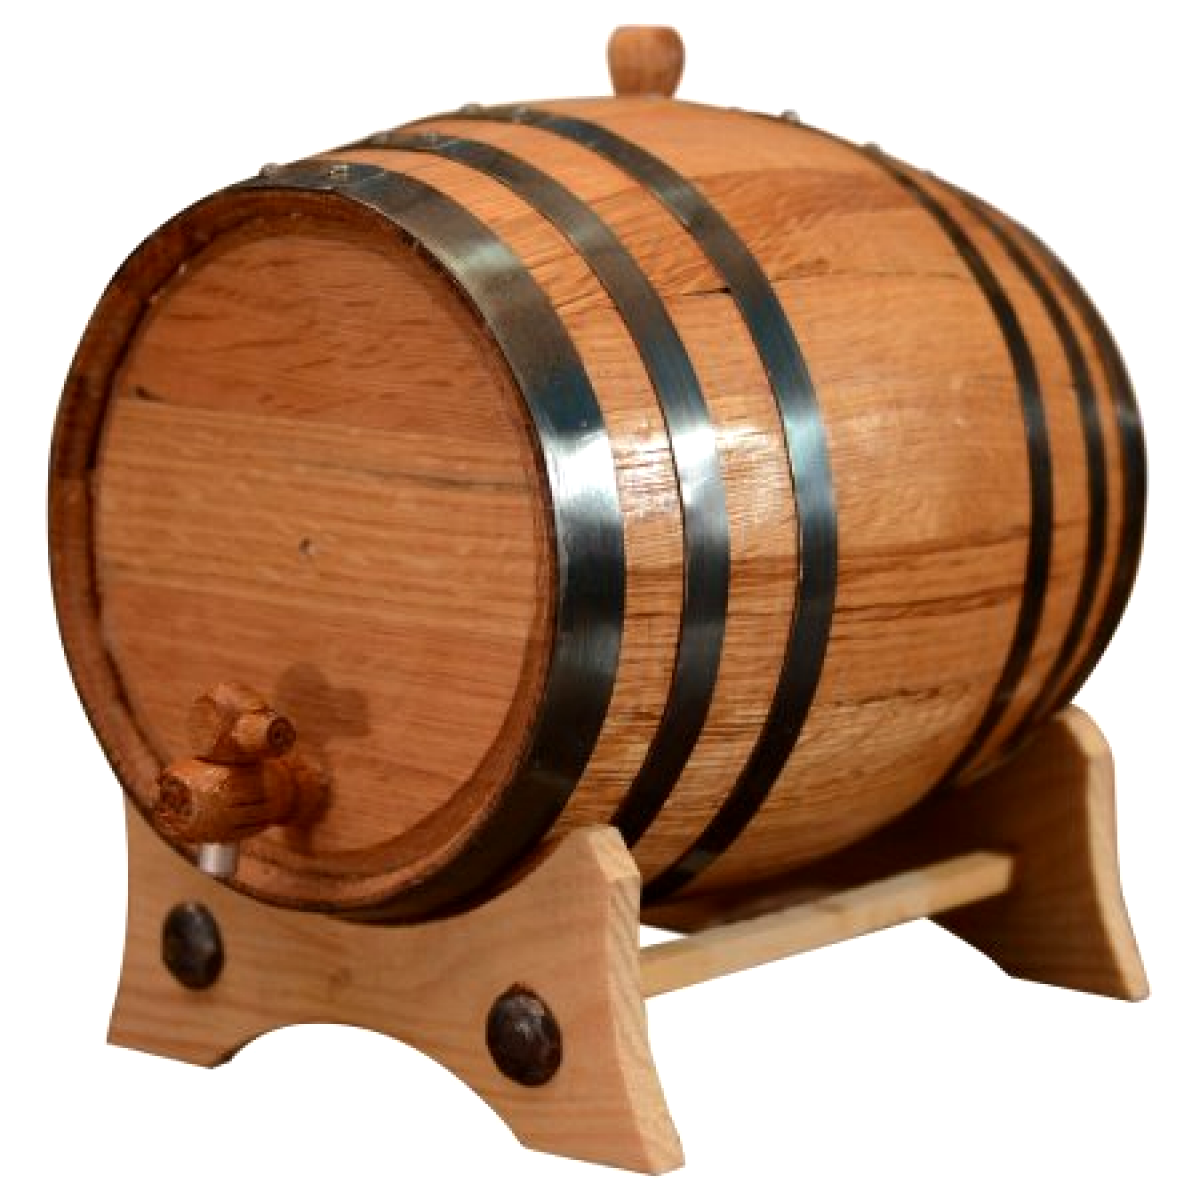 3 Liters American Weiß Oak Wood Aging Barrels Age your own Tequila Whiskey Wine